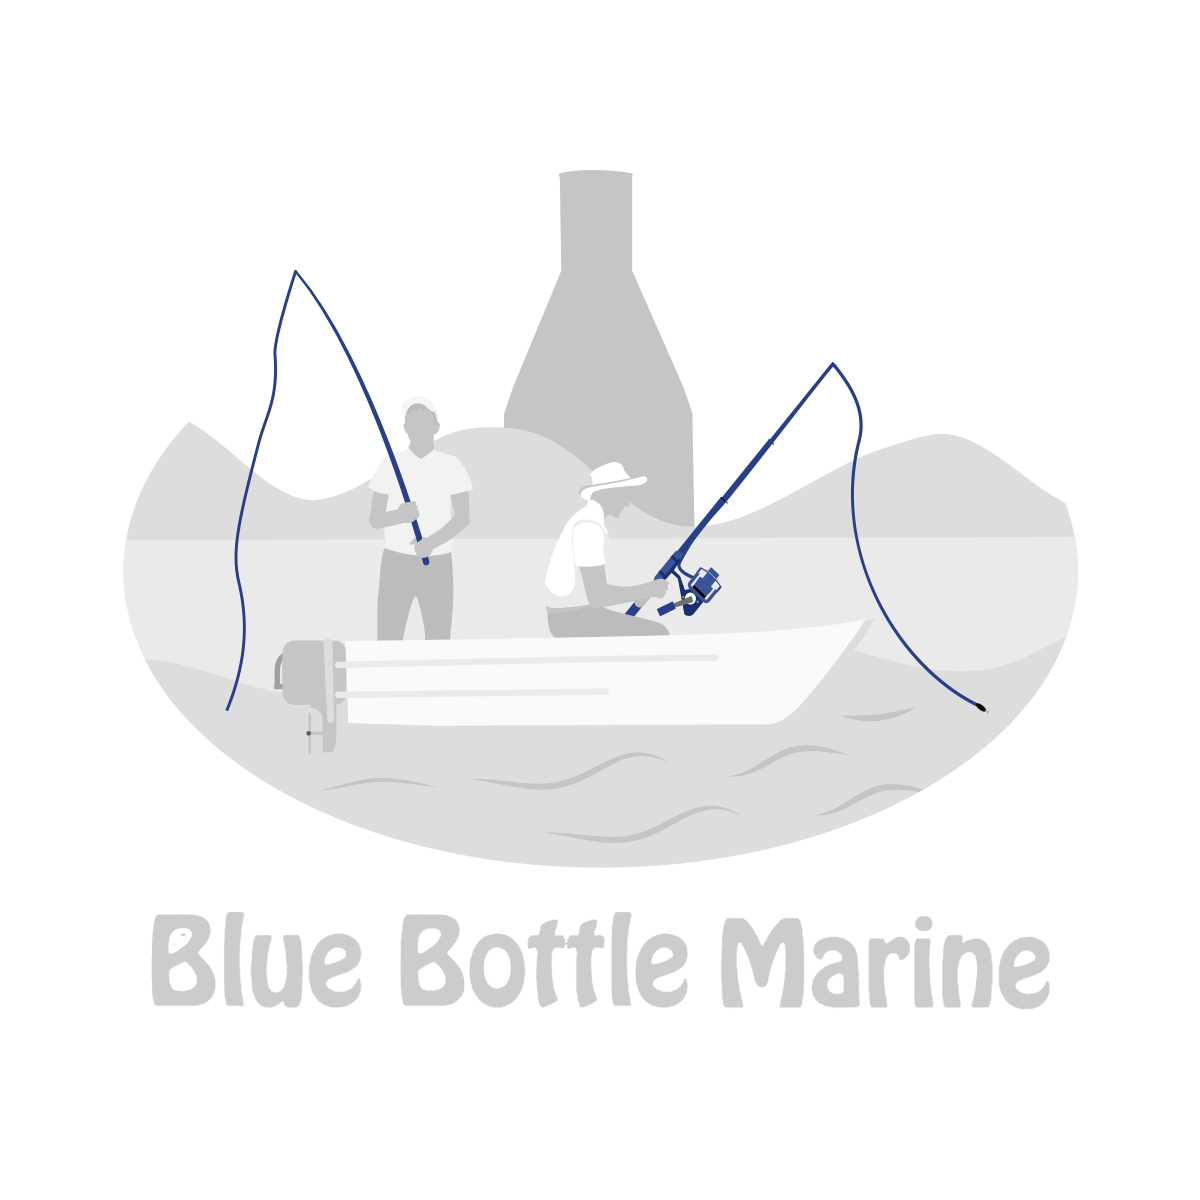 NEW Whale Surge Damper from Blue Bottle Marine